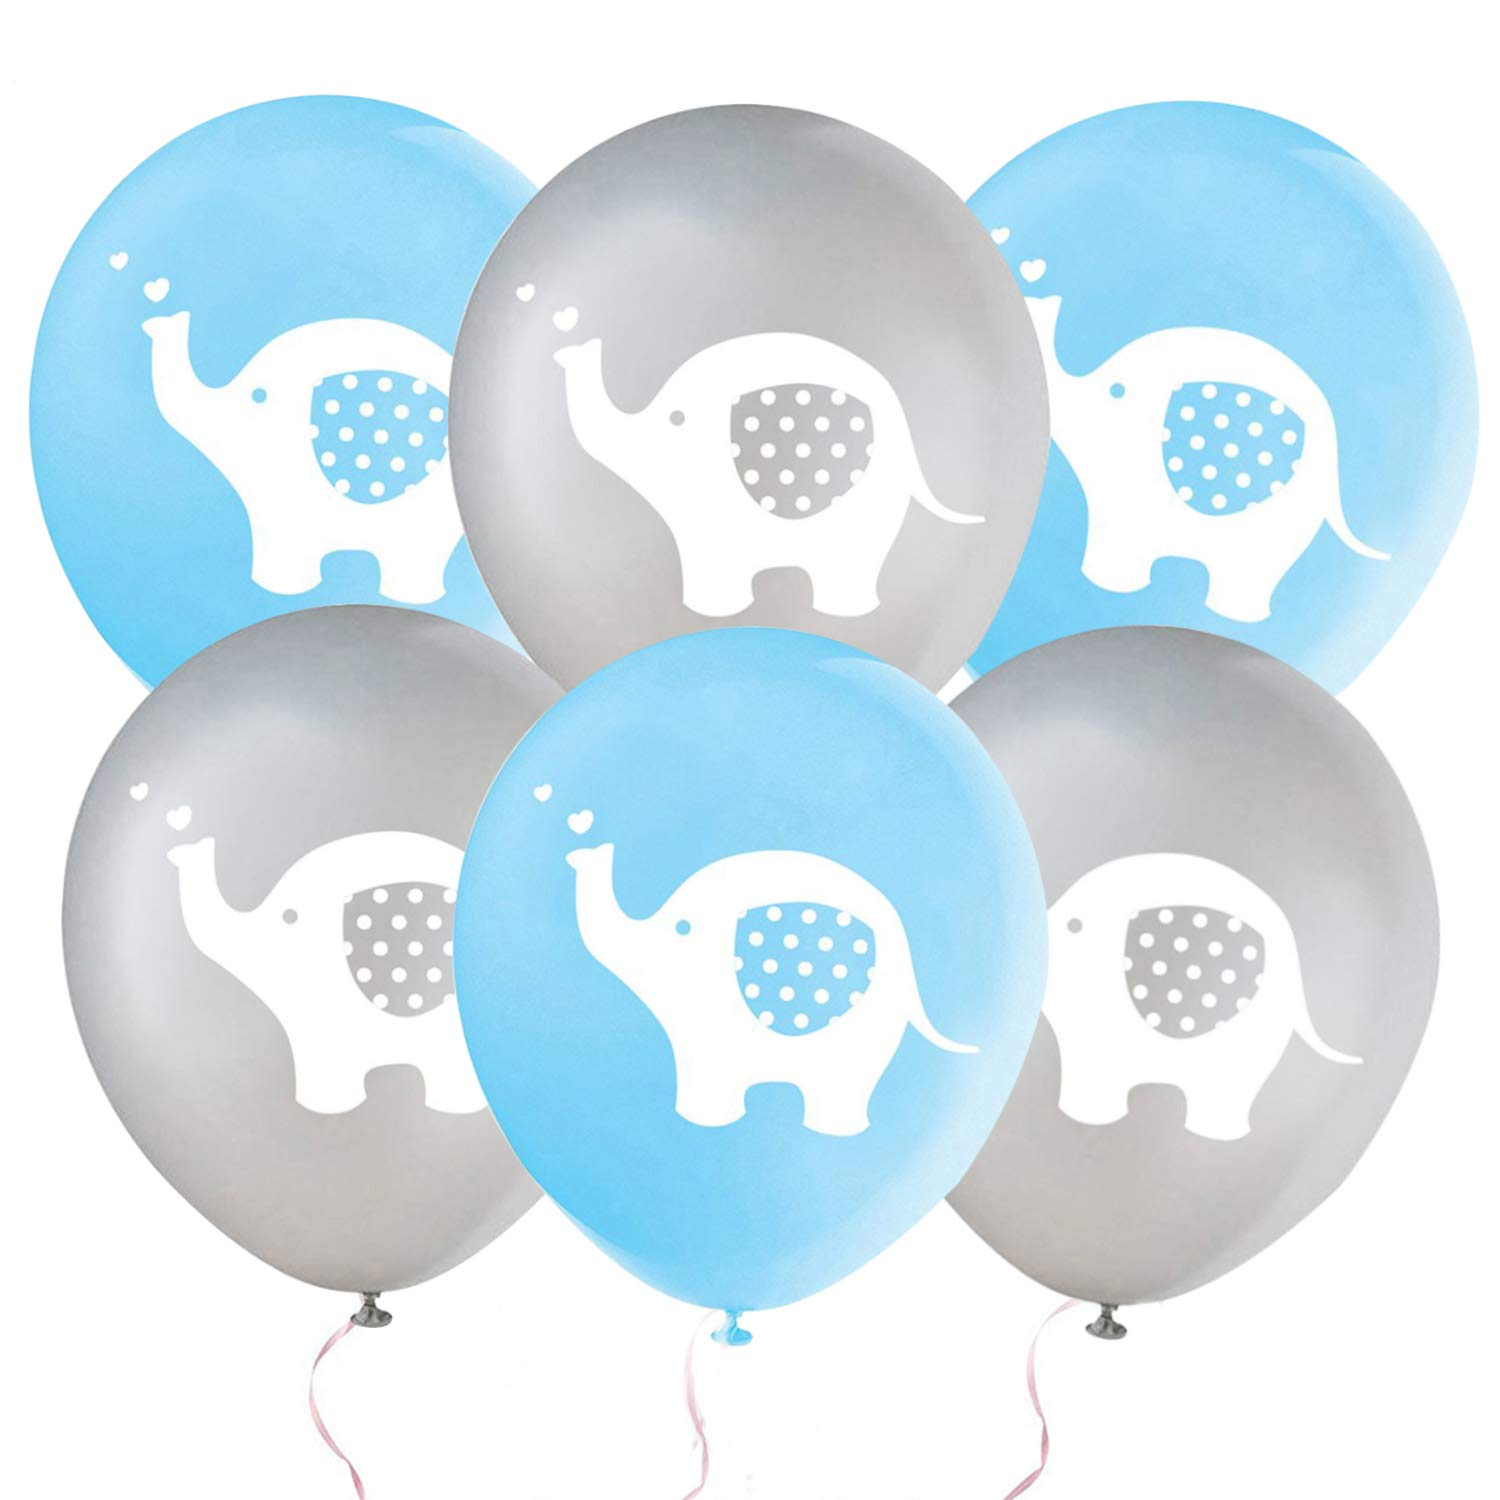 32 Pieces Elephant Balloon Baby Shower Boy Blue and Grey Elephant Latex Balloons for Kids Birthday Party Gender Reveal Animal Themed Party Supplies(Blue & Grey)